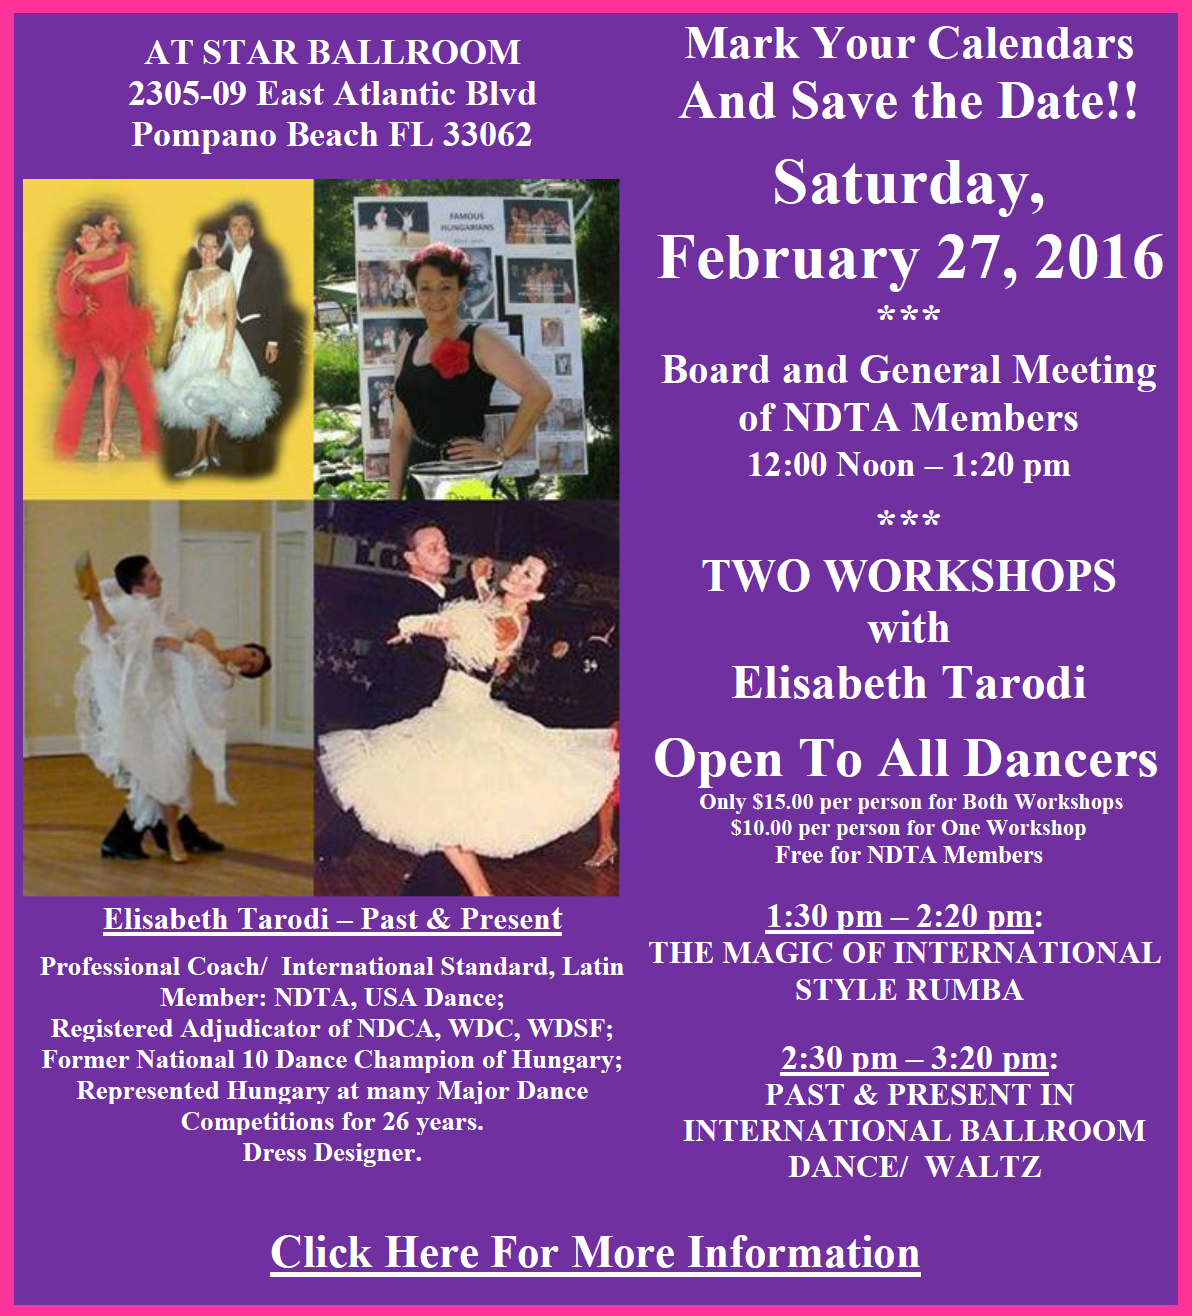 Elisabeth Tarodi Workshops - February 27, 2016